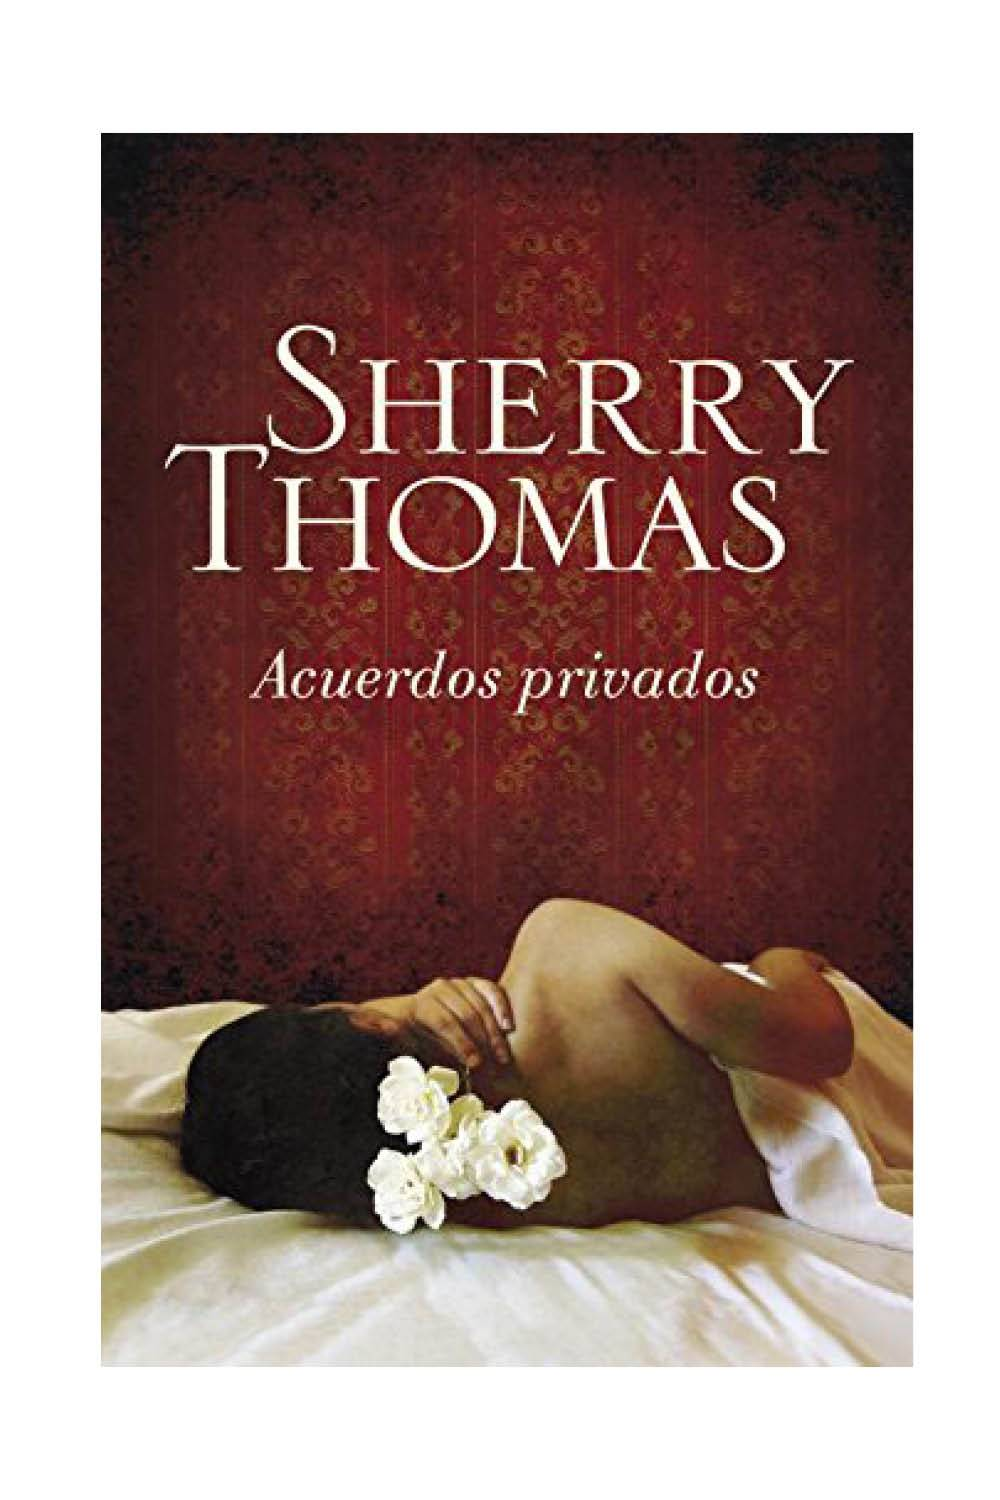 bridgerton libros romanticos sherry thomas acuerdos privados